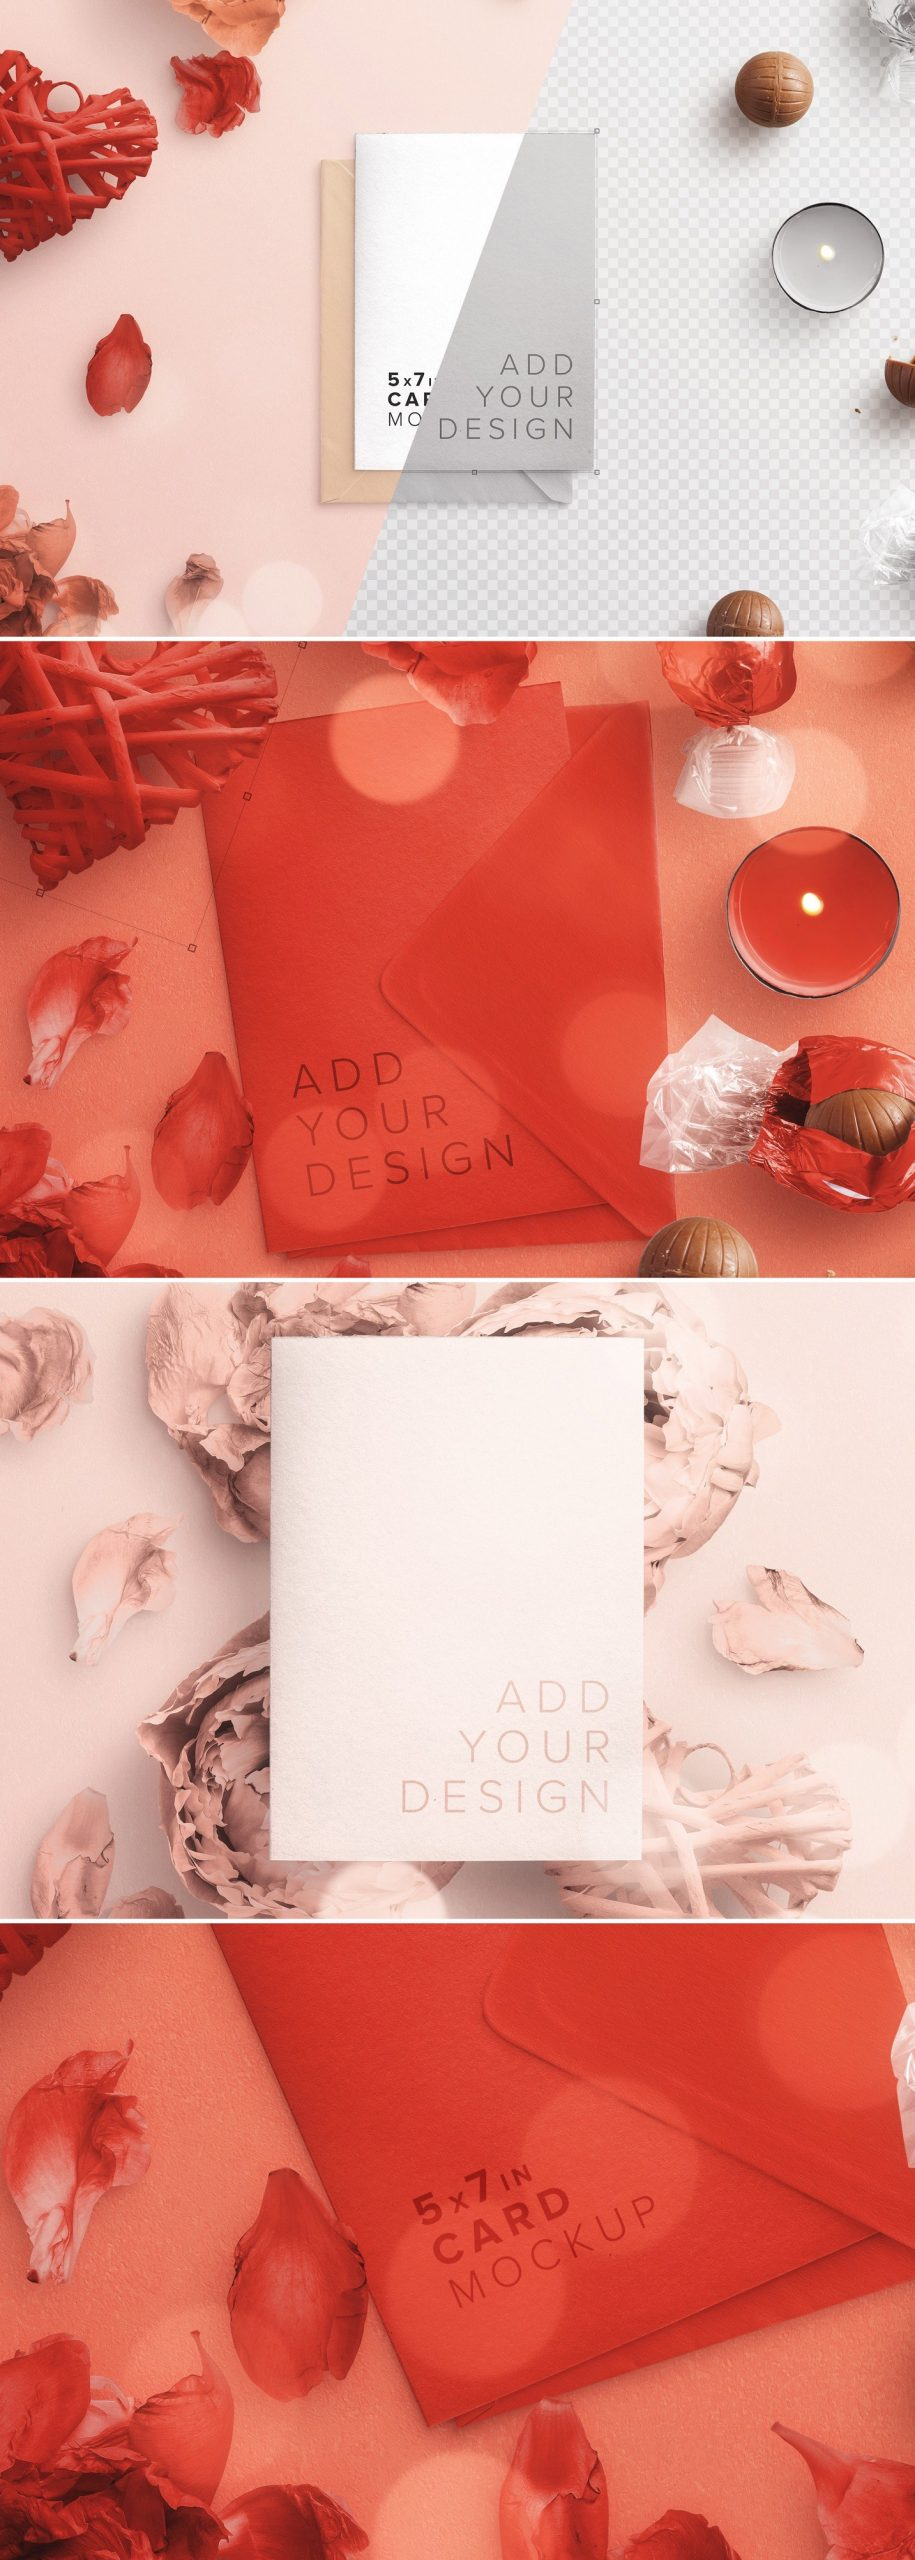 card and envelope romantic scene creator mockup preview1 1 scaled